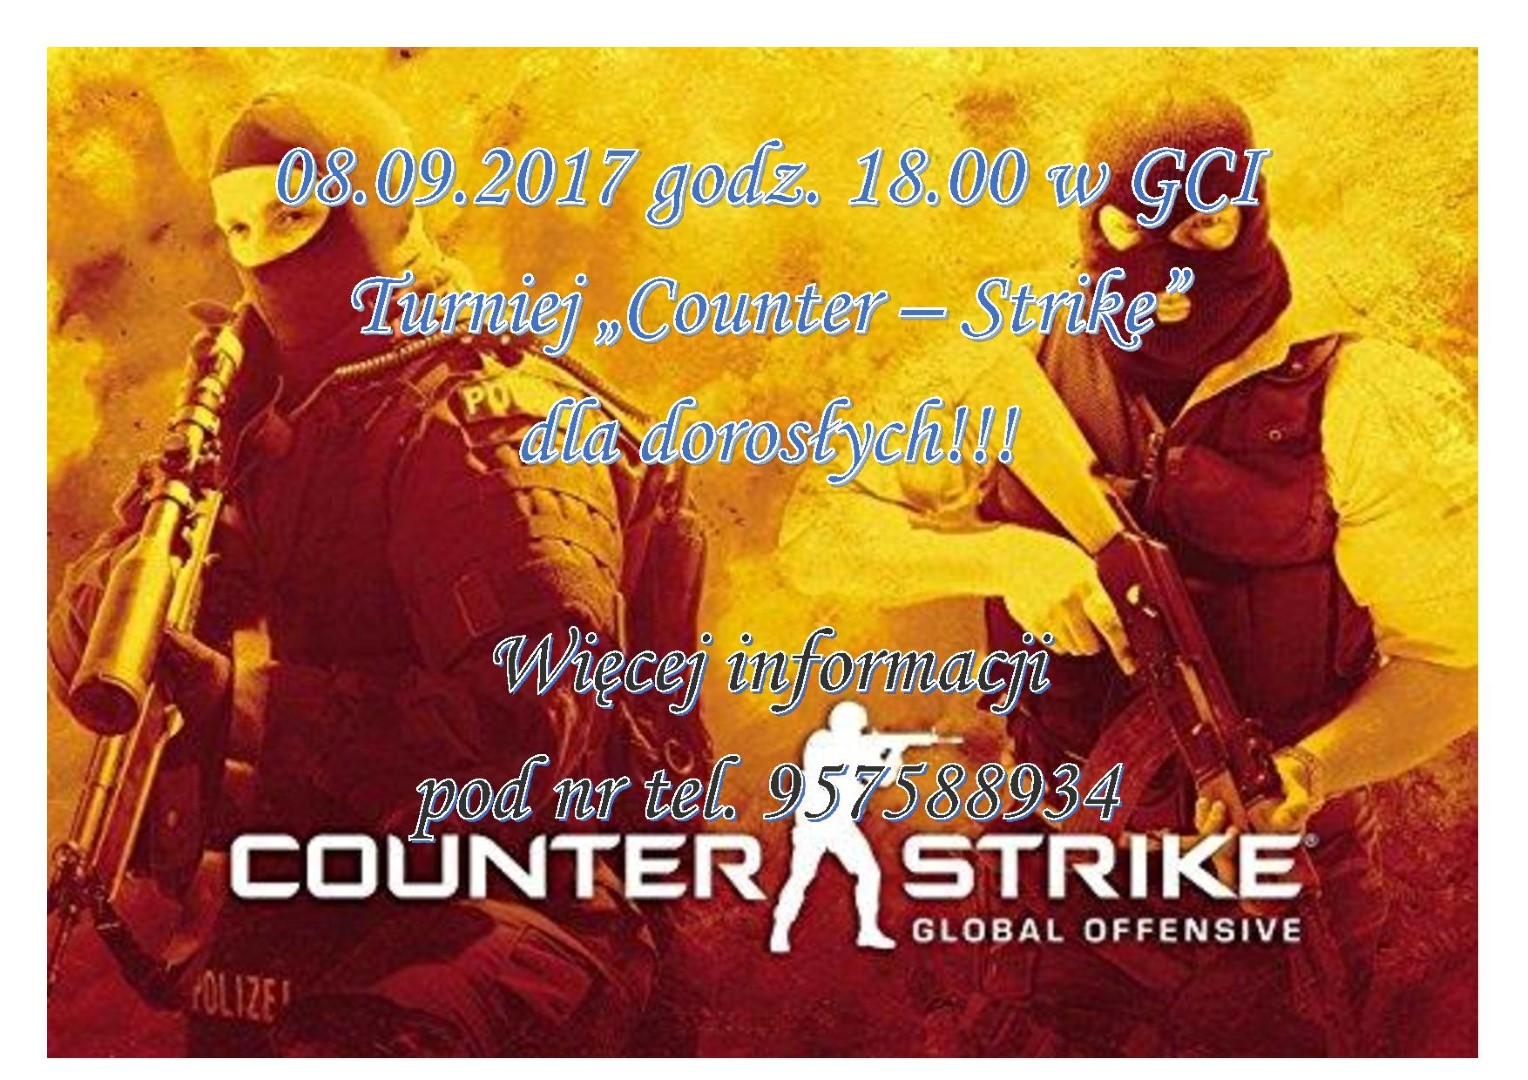 You are browsing images from the article: Counter - Strike